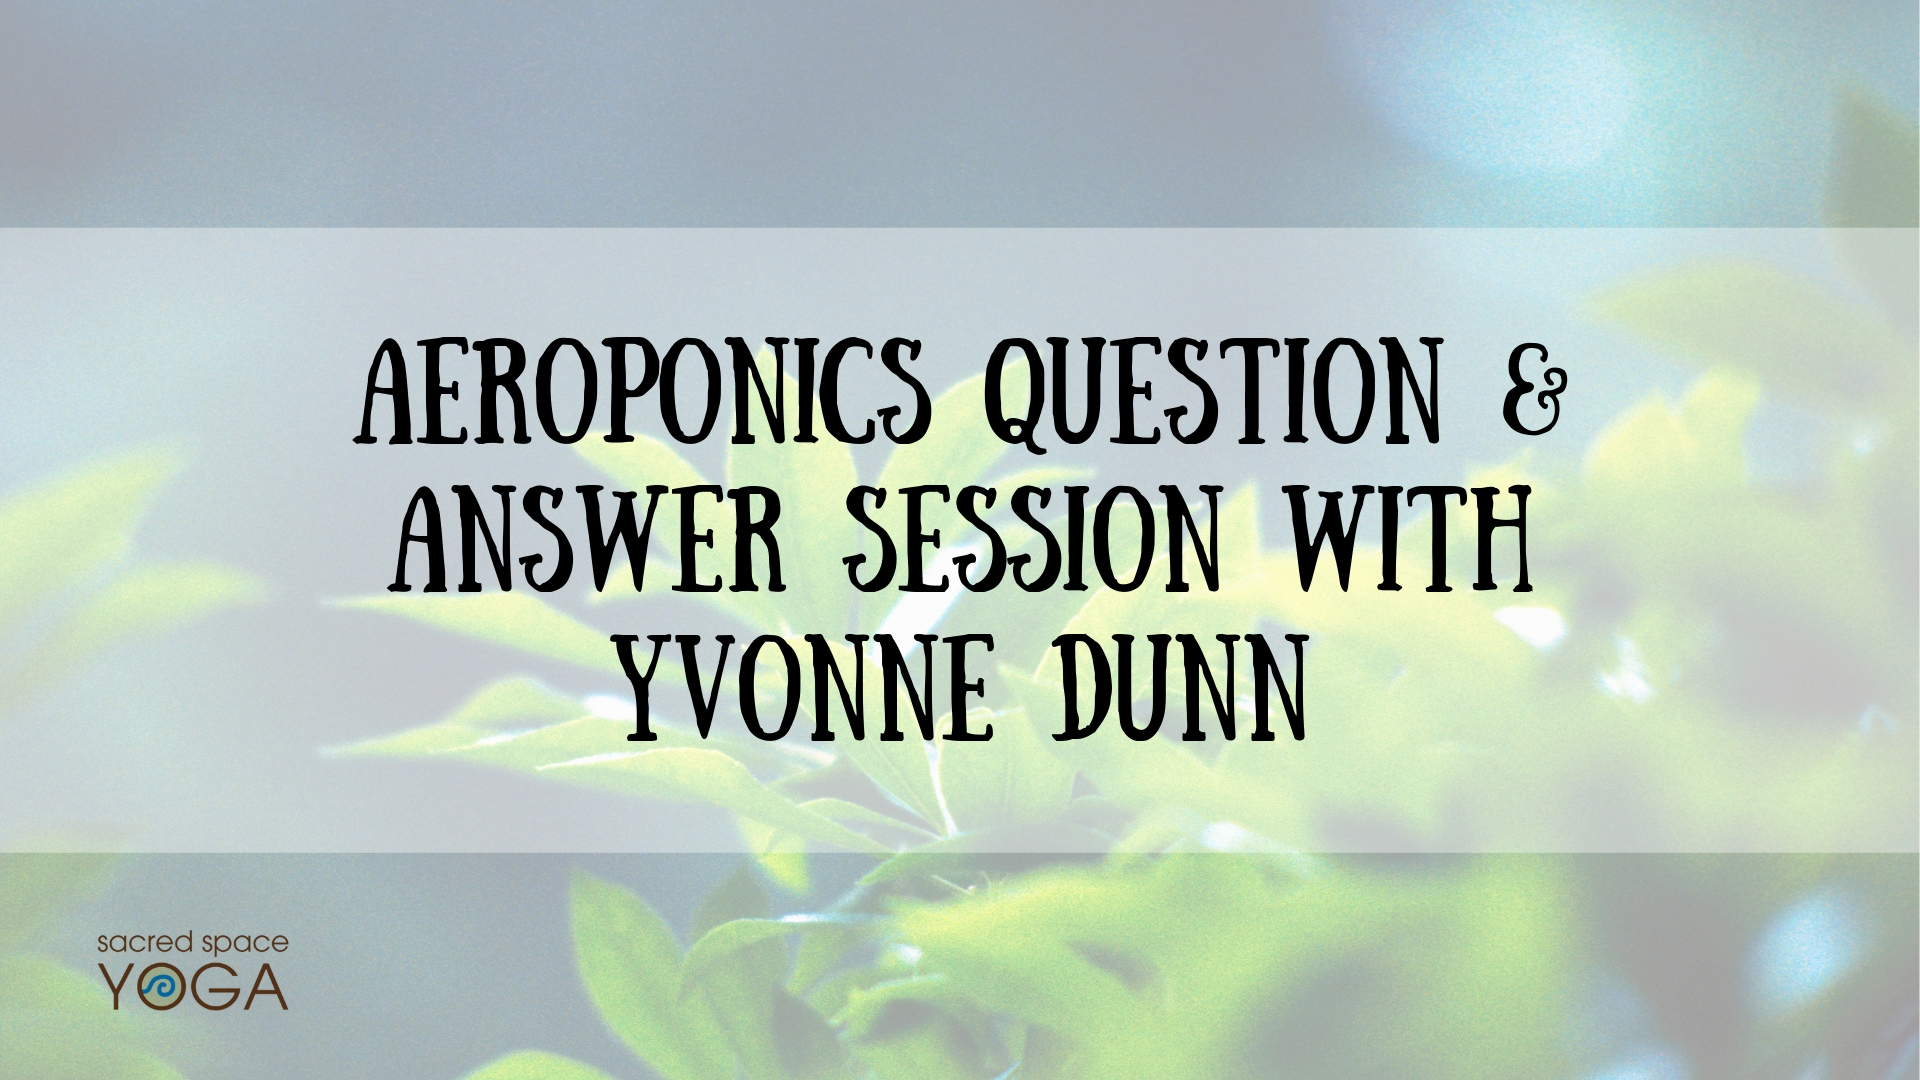 SSY Aeroponics Question & Answer Session With Yvonne Dunn FB Event Cover 9.20.19 .jpg